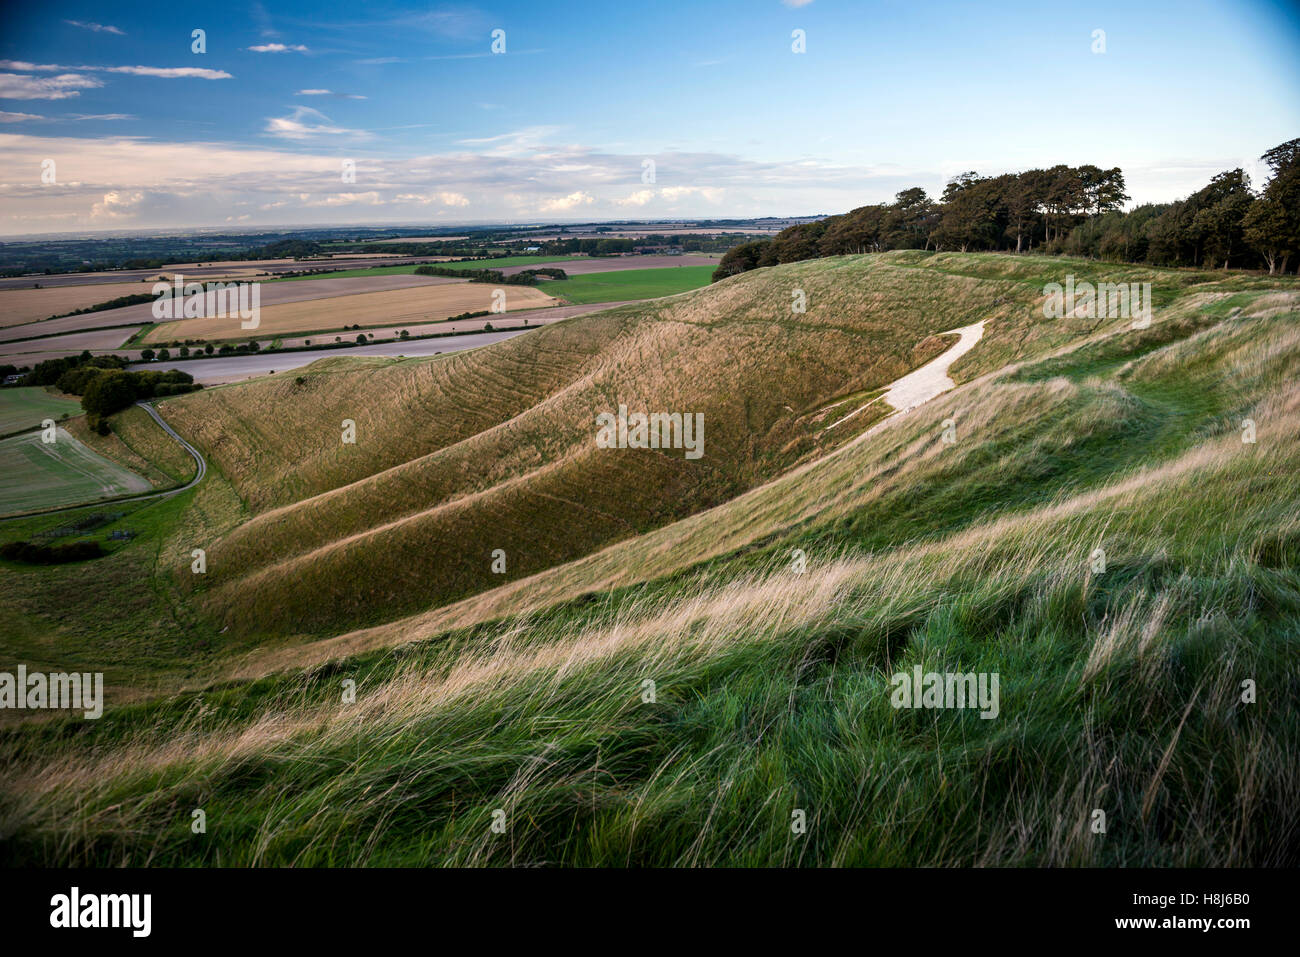 The Cherhill White Horse from Oldbury Iron Age hill fort in Wiltshire, UK Stock Photo